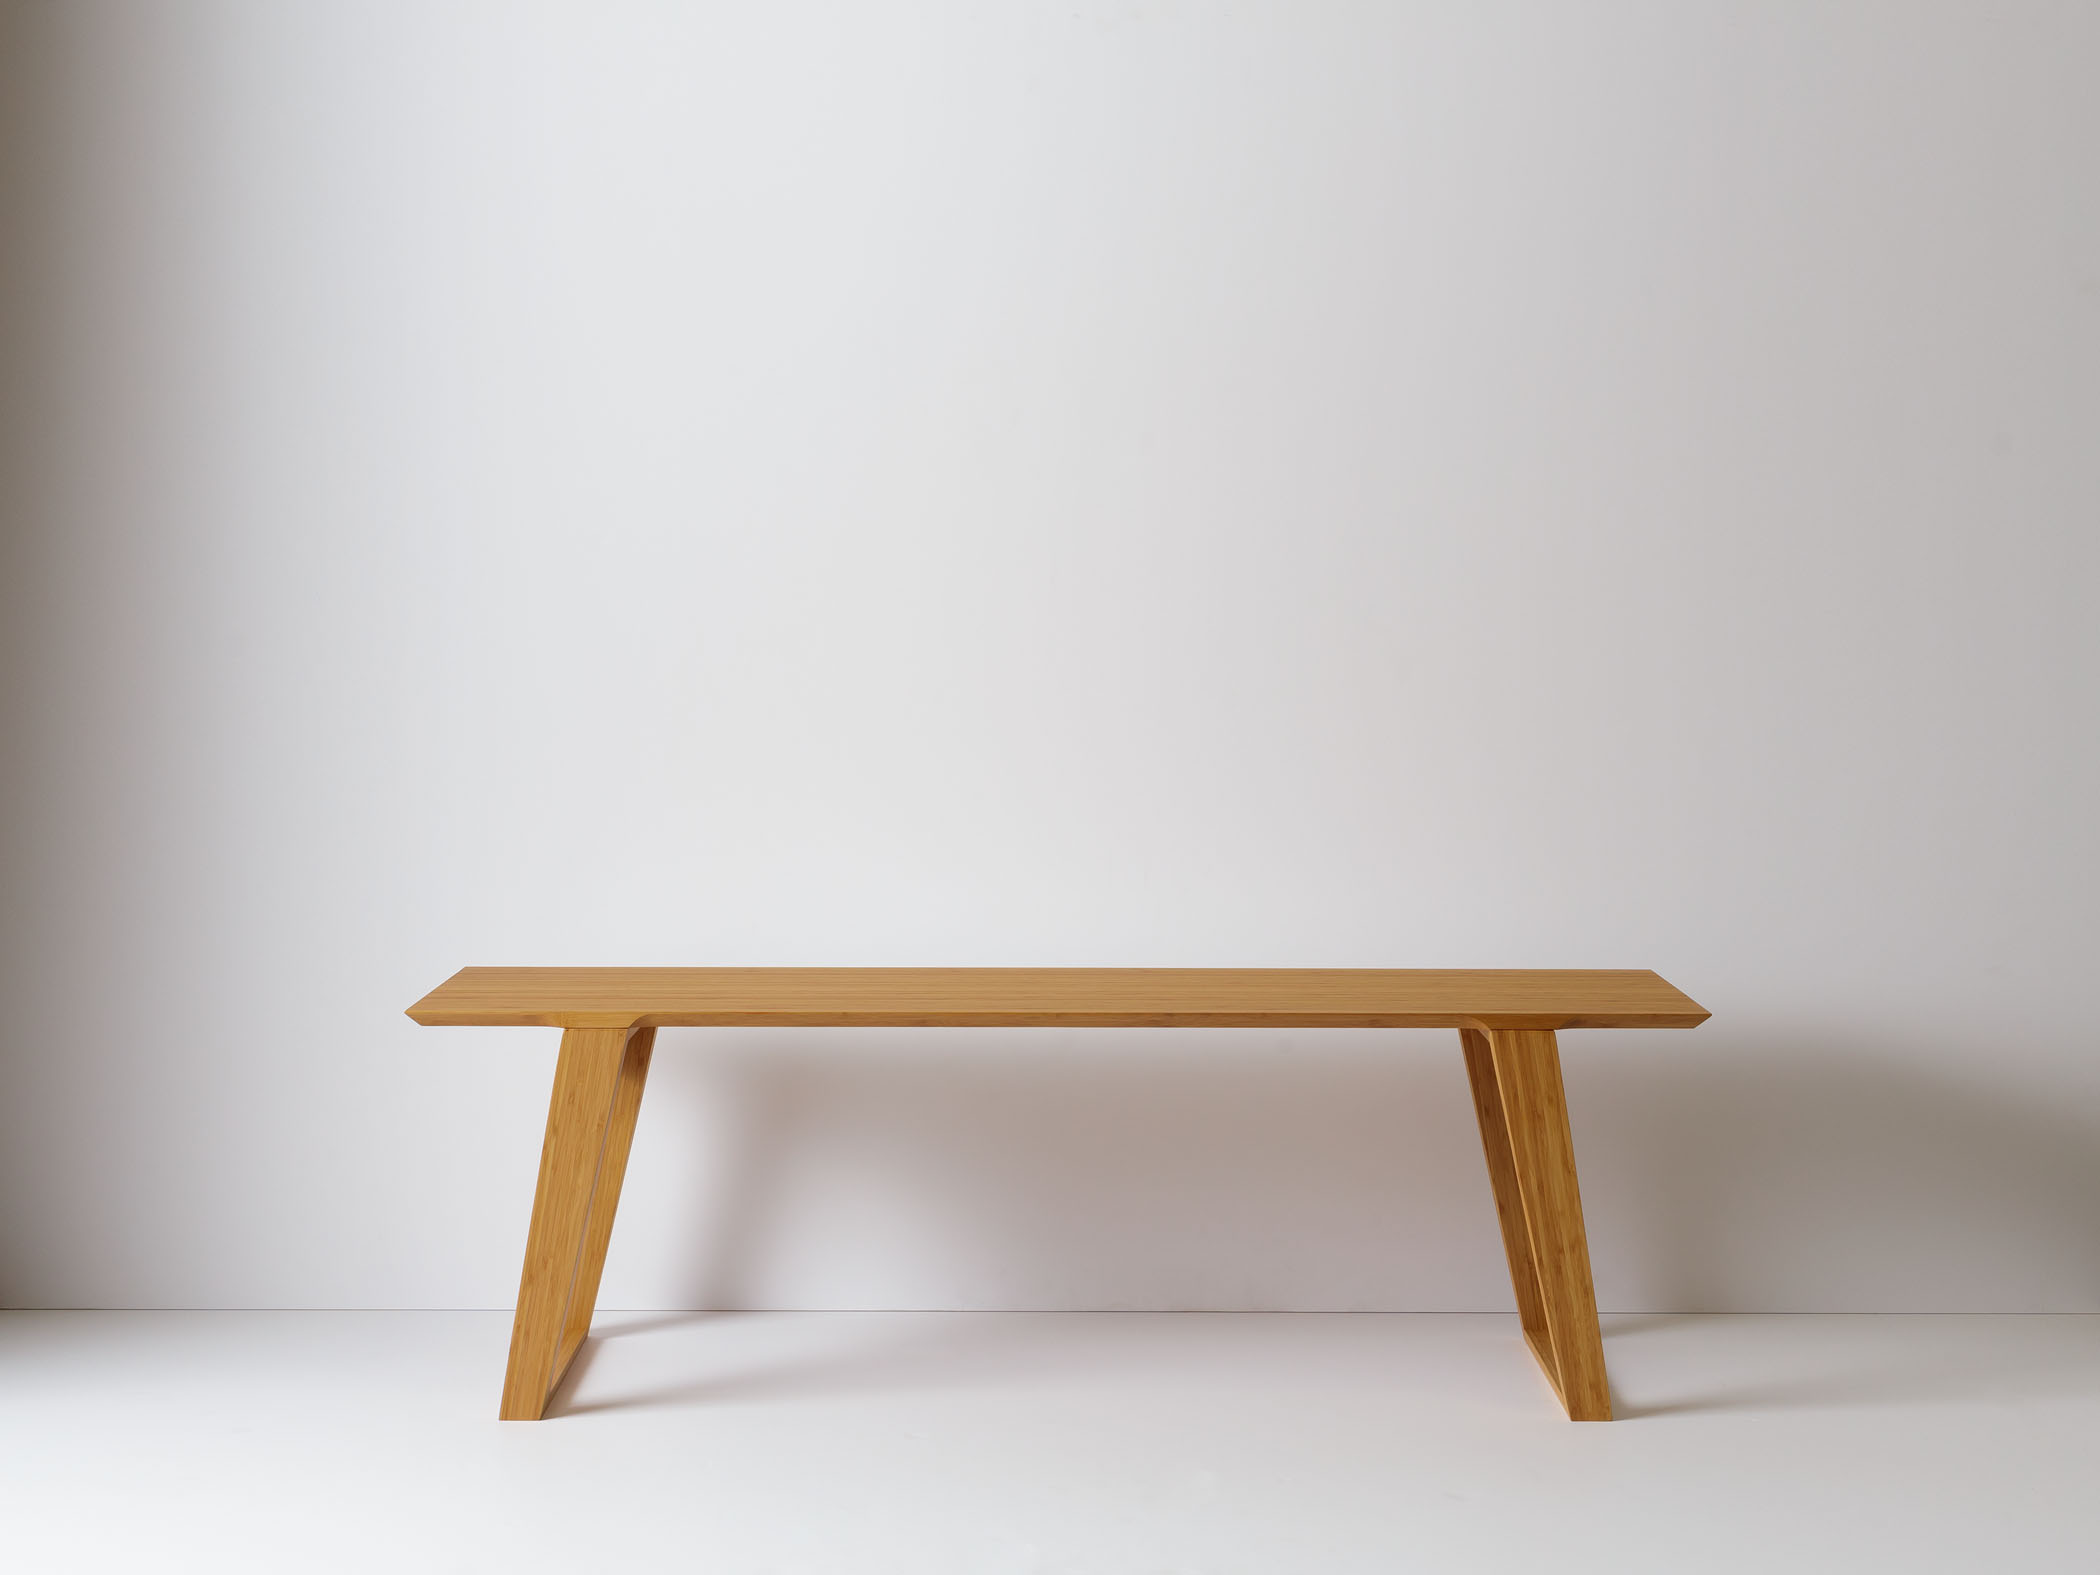 Modern contemporary bench or coffee table in solid bamboo